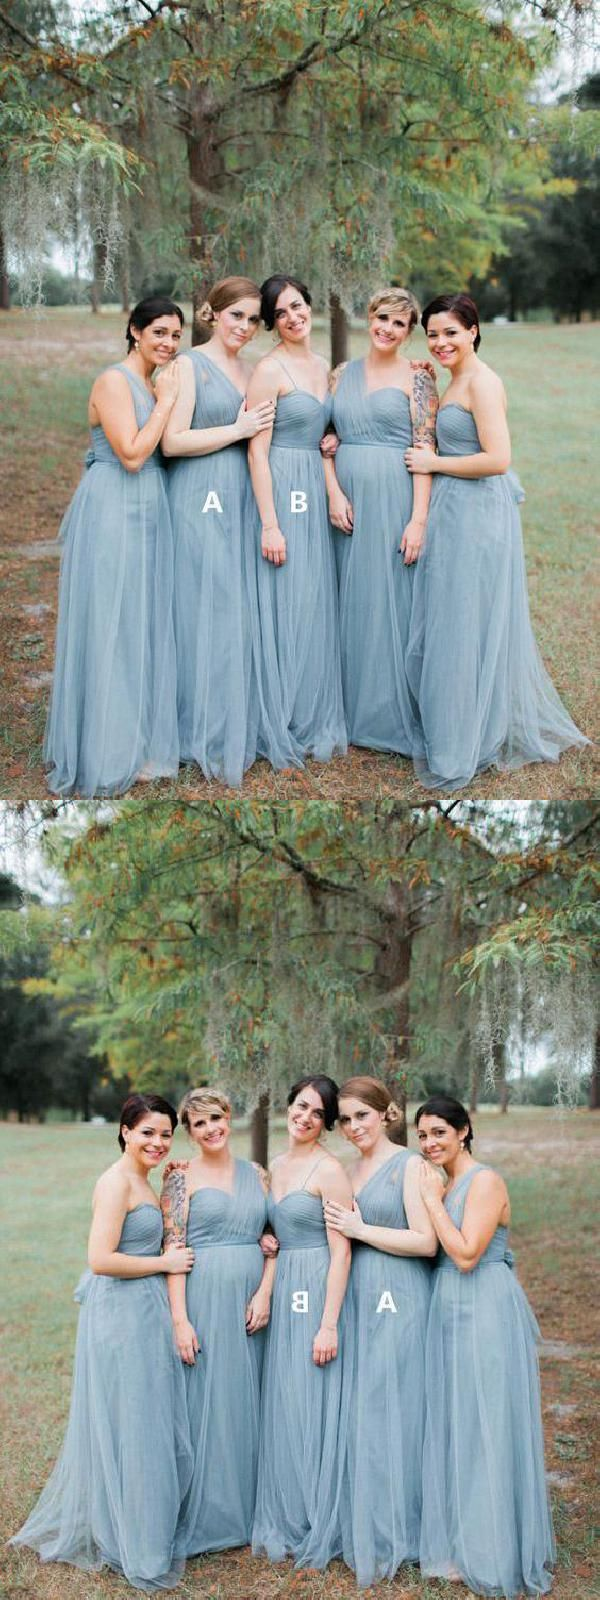 dcbccbcf9 55 Affordable Bridesmaid Dresses That Don't Look Cheap